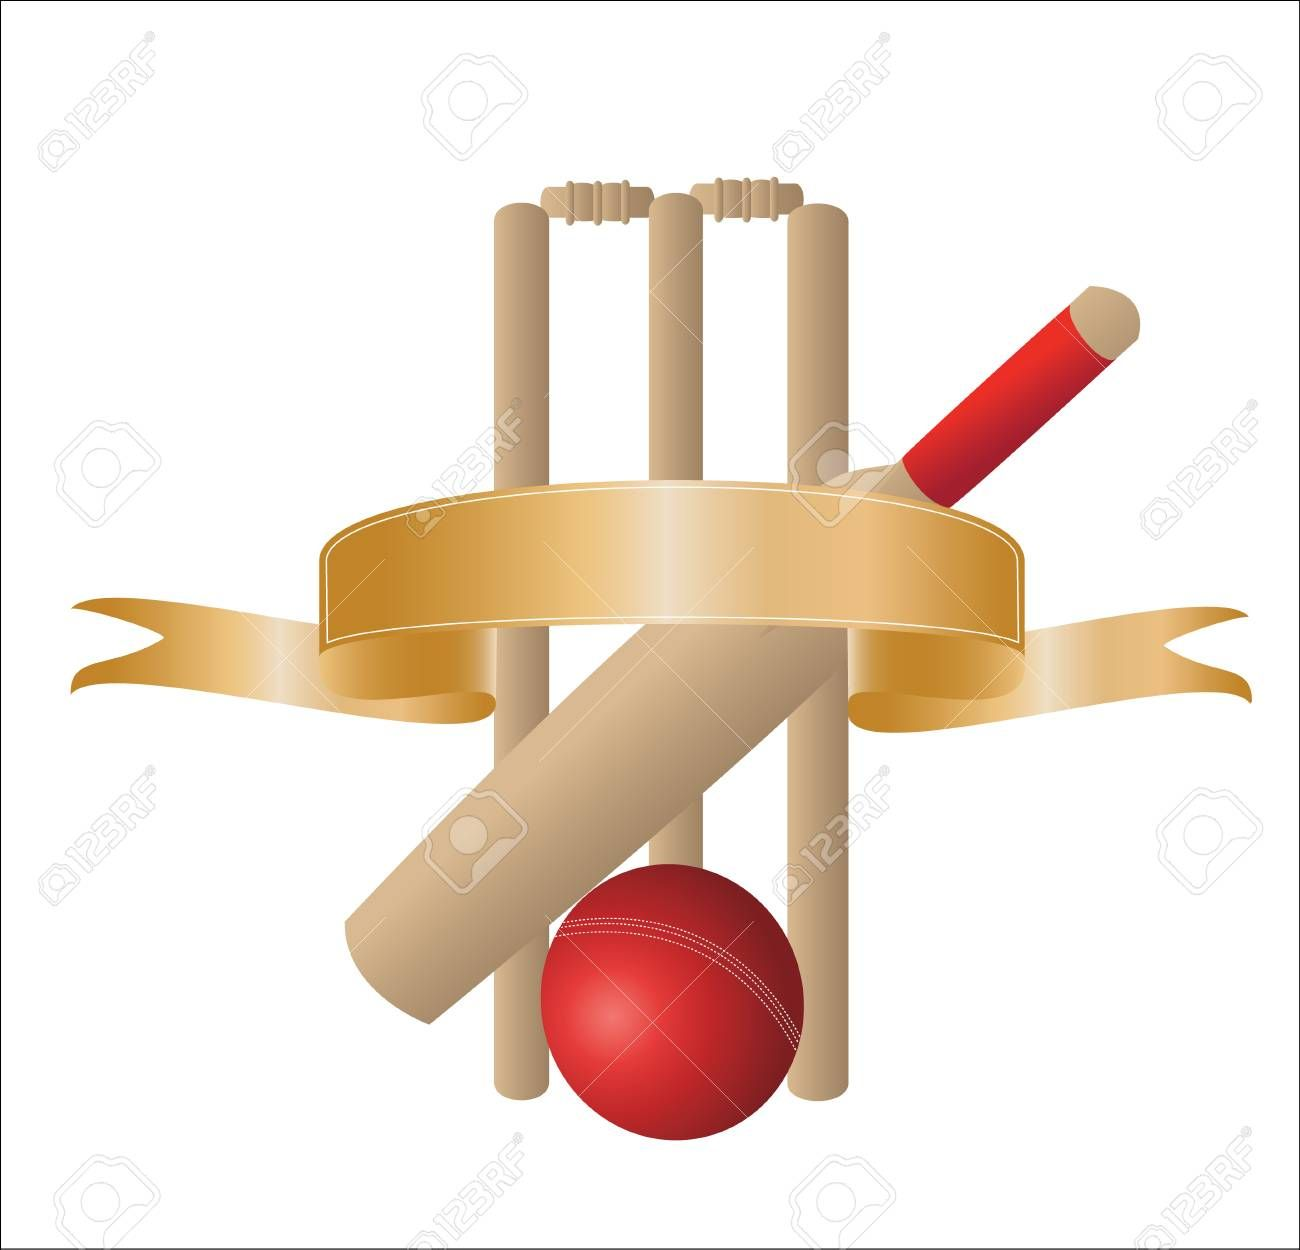 Illustration Of One Cricket Bat With Wickets And A Blank Gold